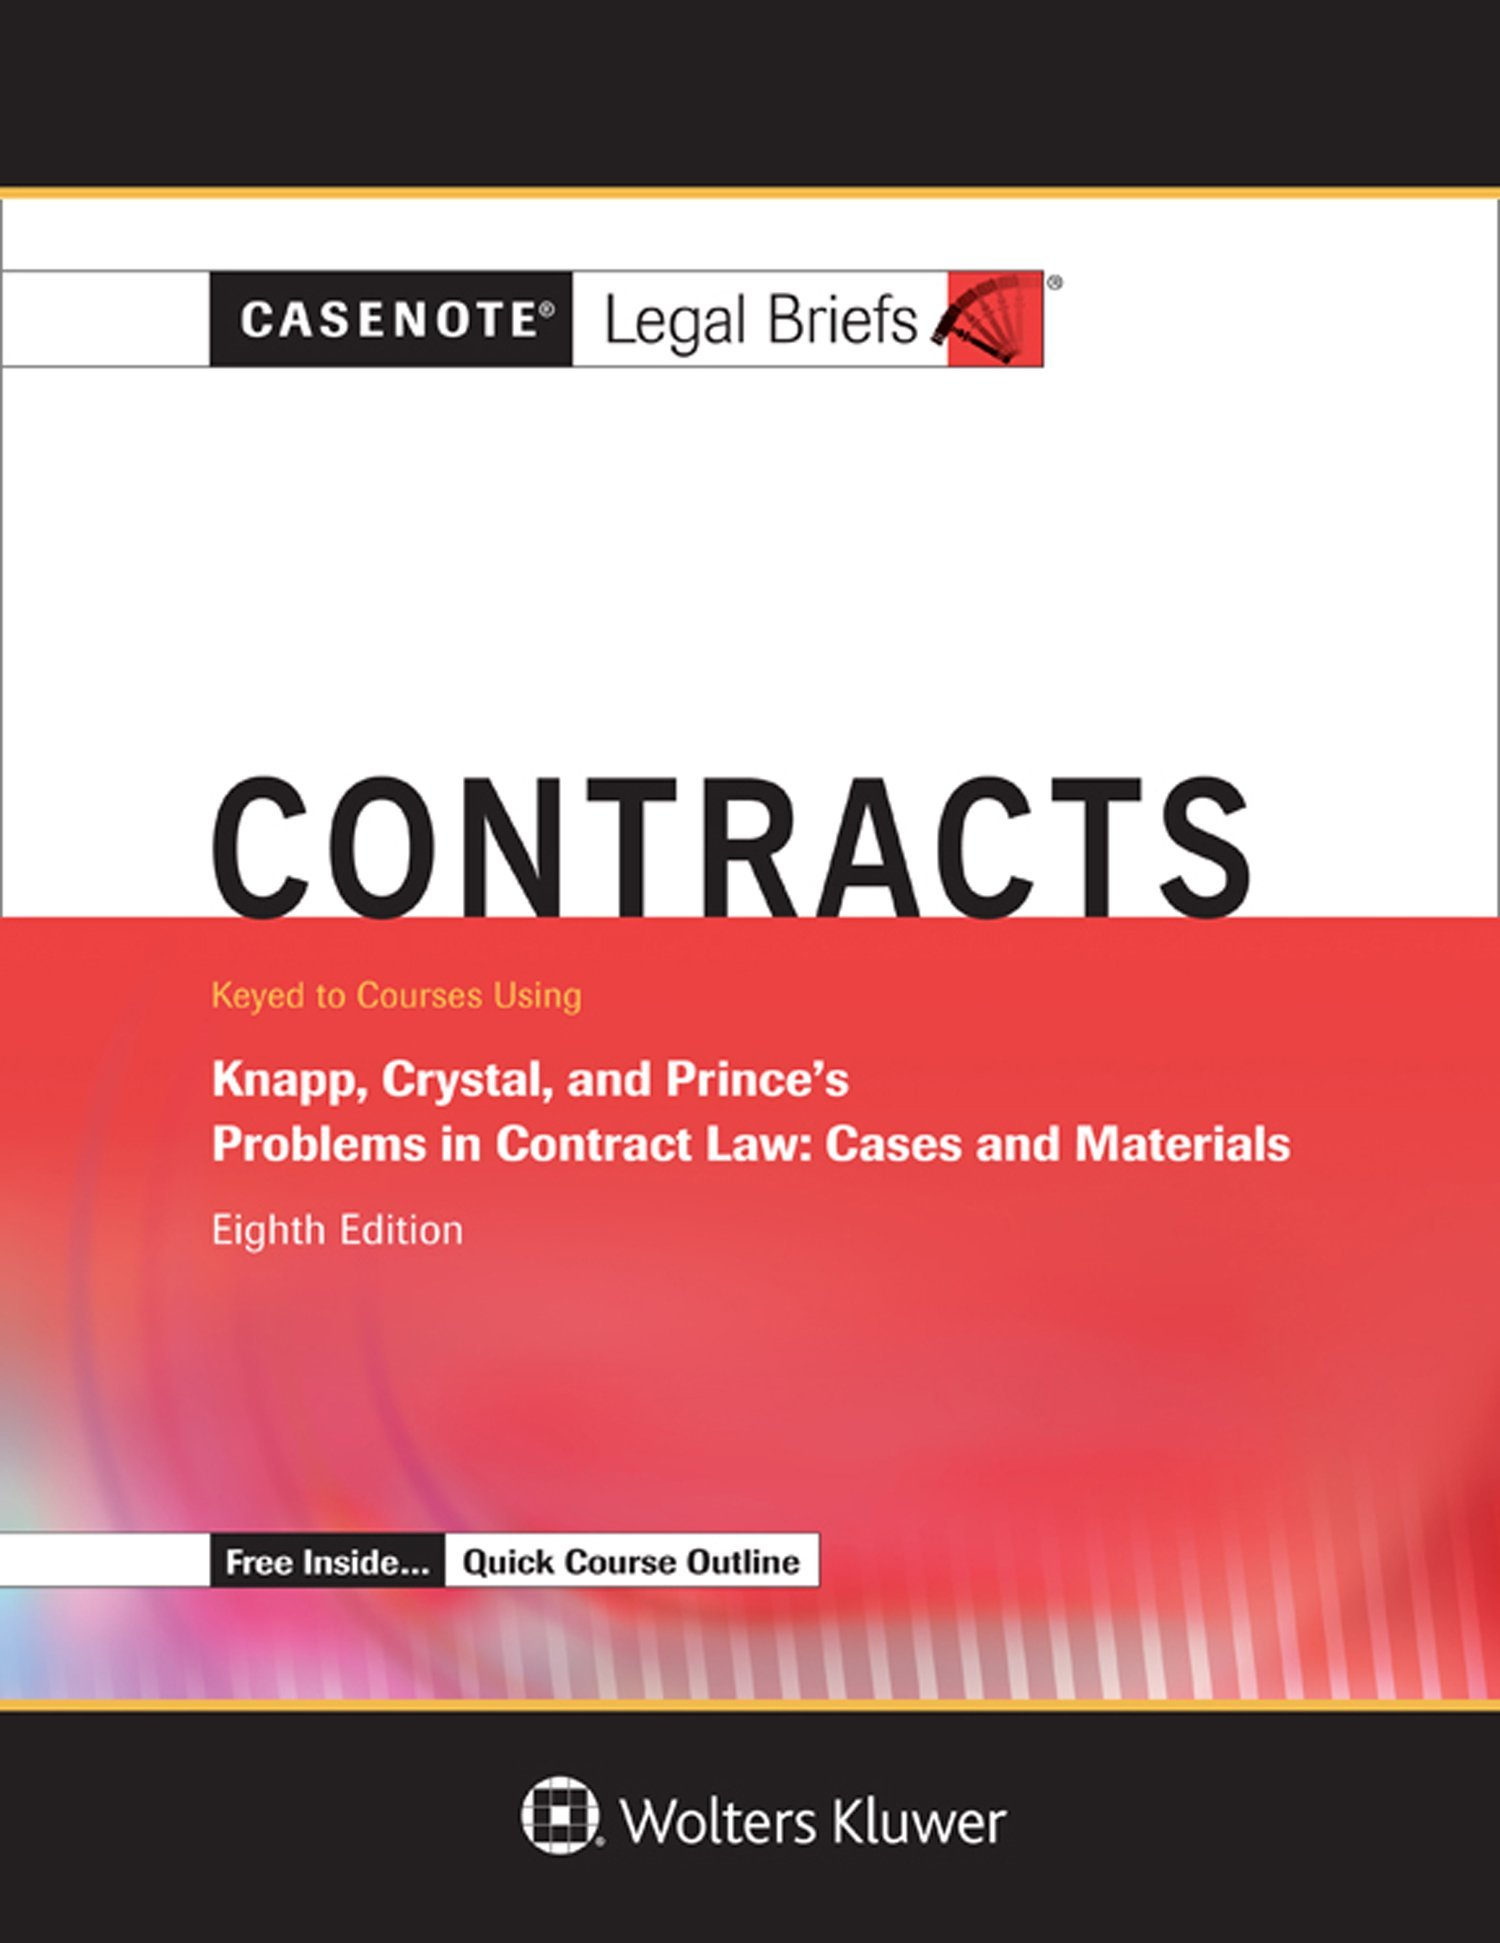 Image OfCasenote Legal Briefs: Contracts, Keyed To Knapp, Crystal, And Prince